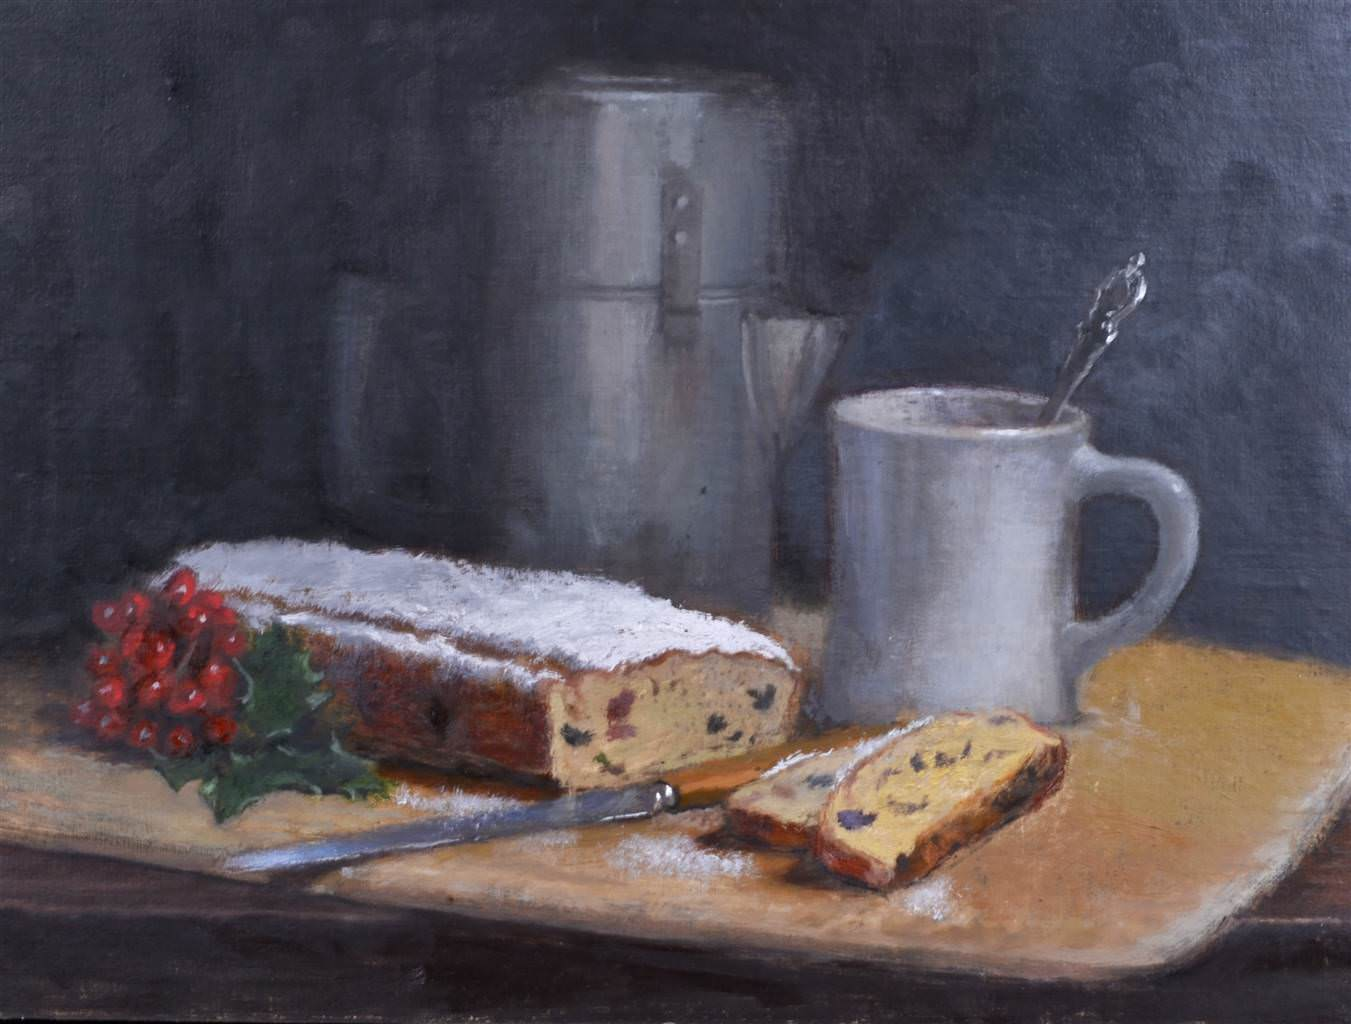 Cake Art Penrith Hours : Holiday Hours Art Gallery Blog